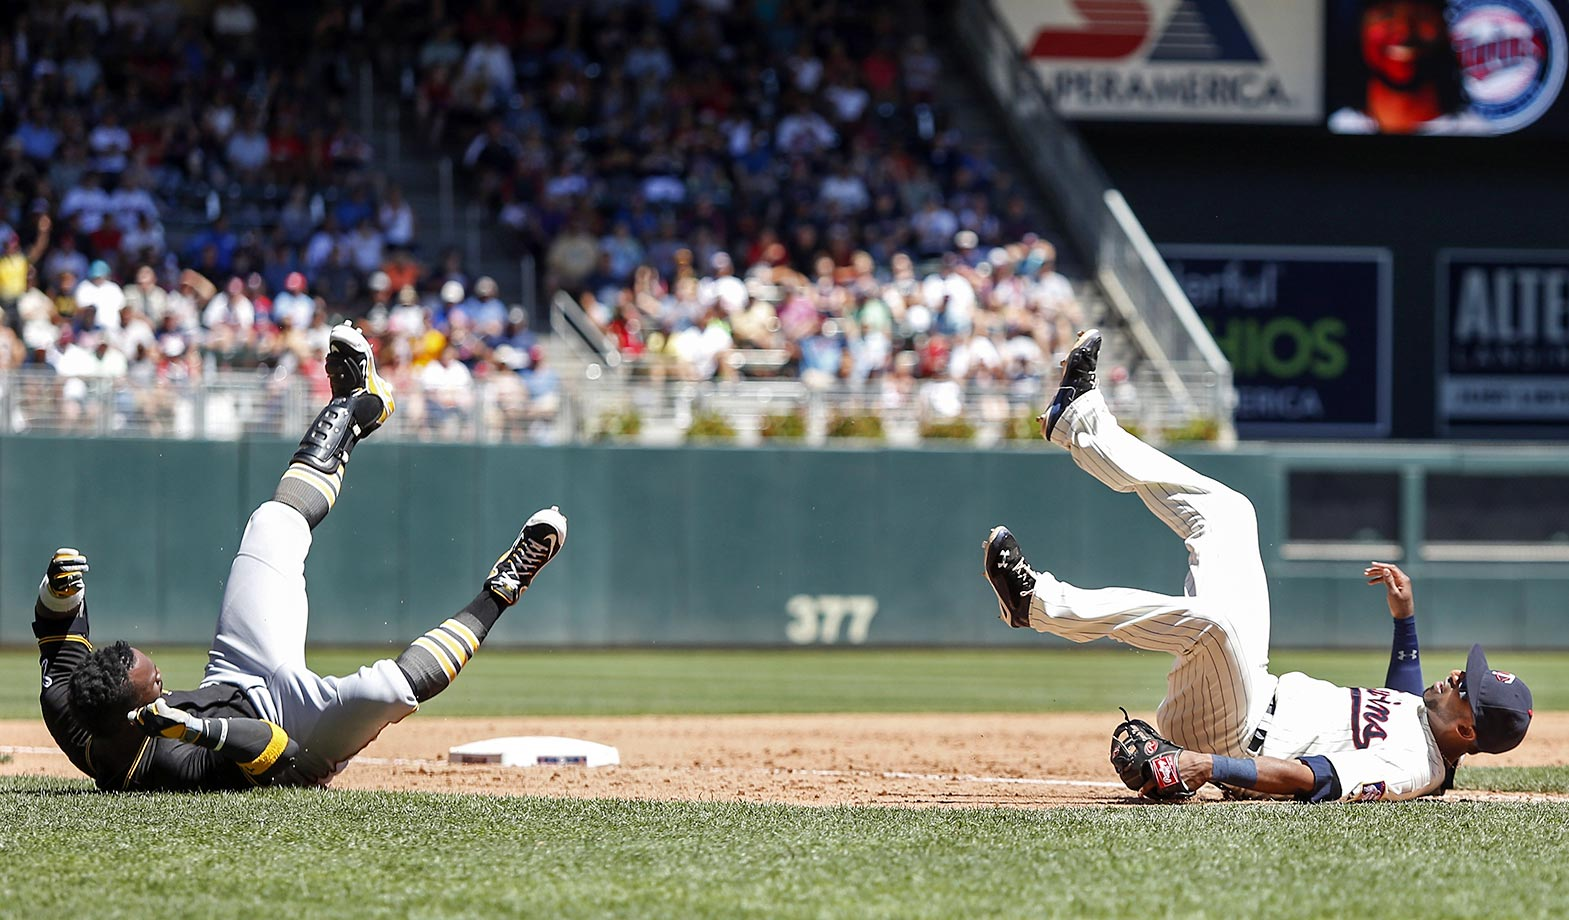 Andrew McCutchen and Eduardo Nunez, July 29, 2015.